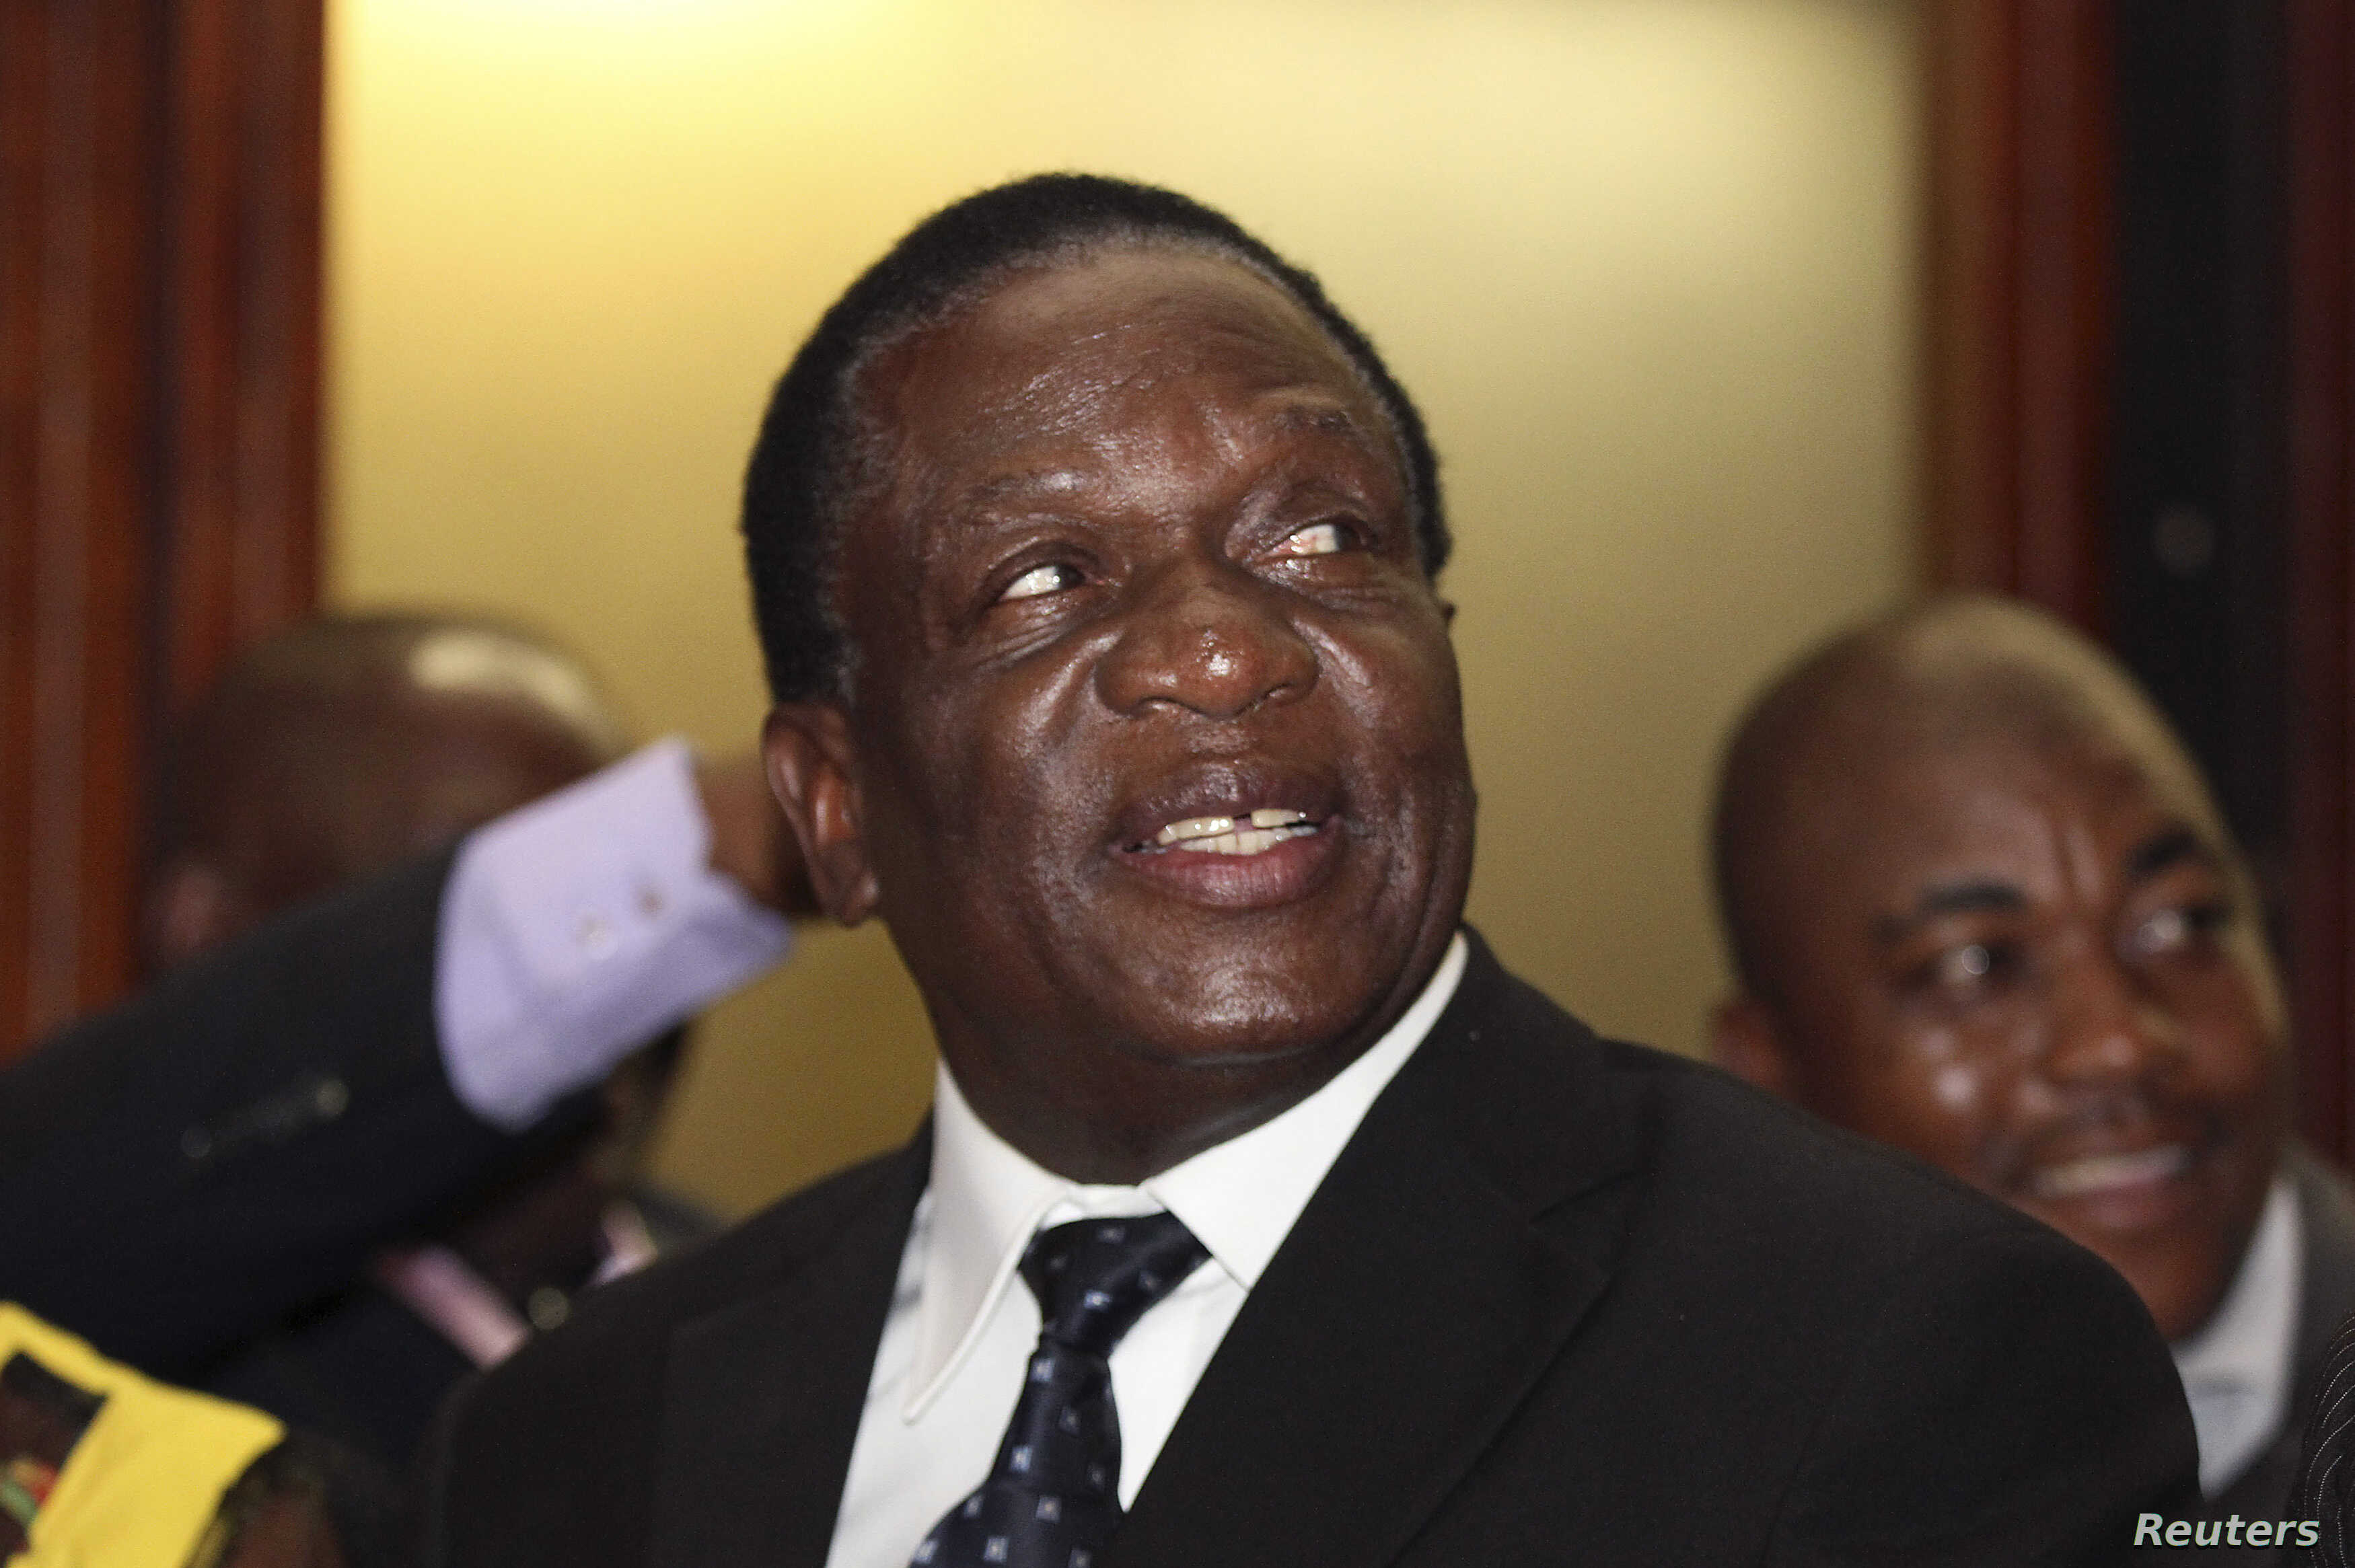 Newly appointed Zimbabwean Deputy President Emmerson Mnangagwa smiles at the headquarters of ZANU (PF) in Harare, Dec.10, 2014.